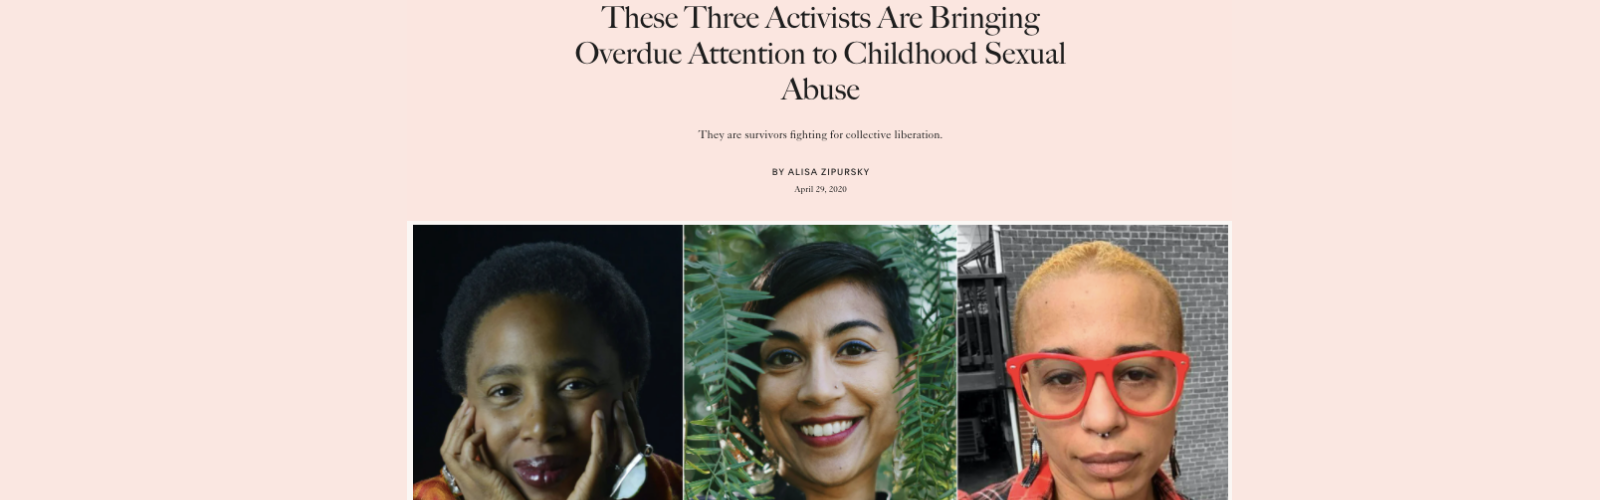 "Screenshot of Allure.com article titled, ""These Three Activists Are Bringing Overdue Attention to Childhood Sexual Abuse"""